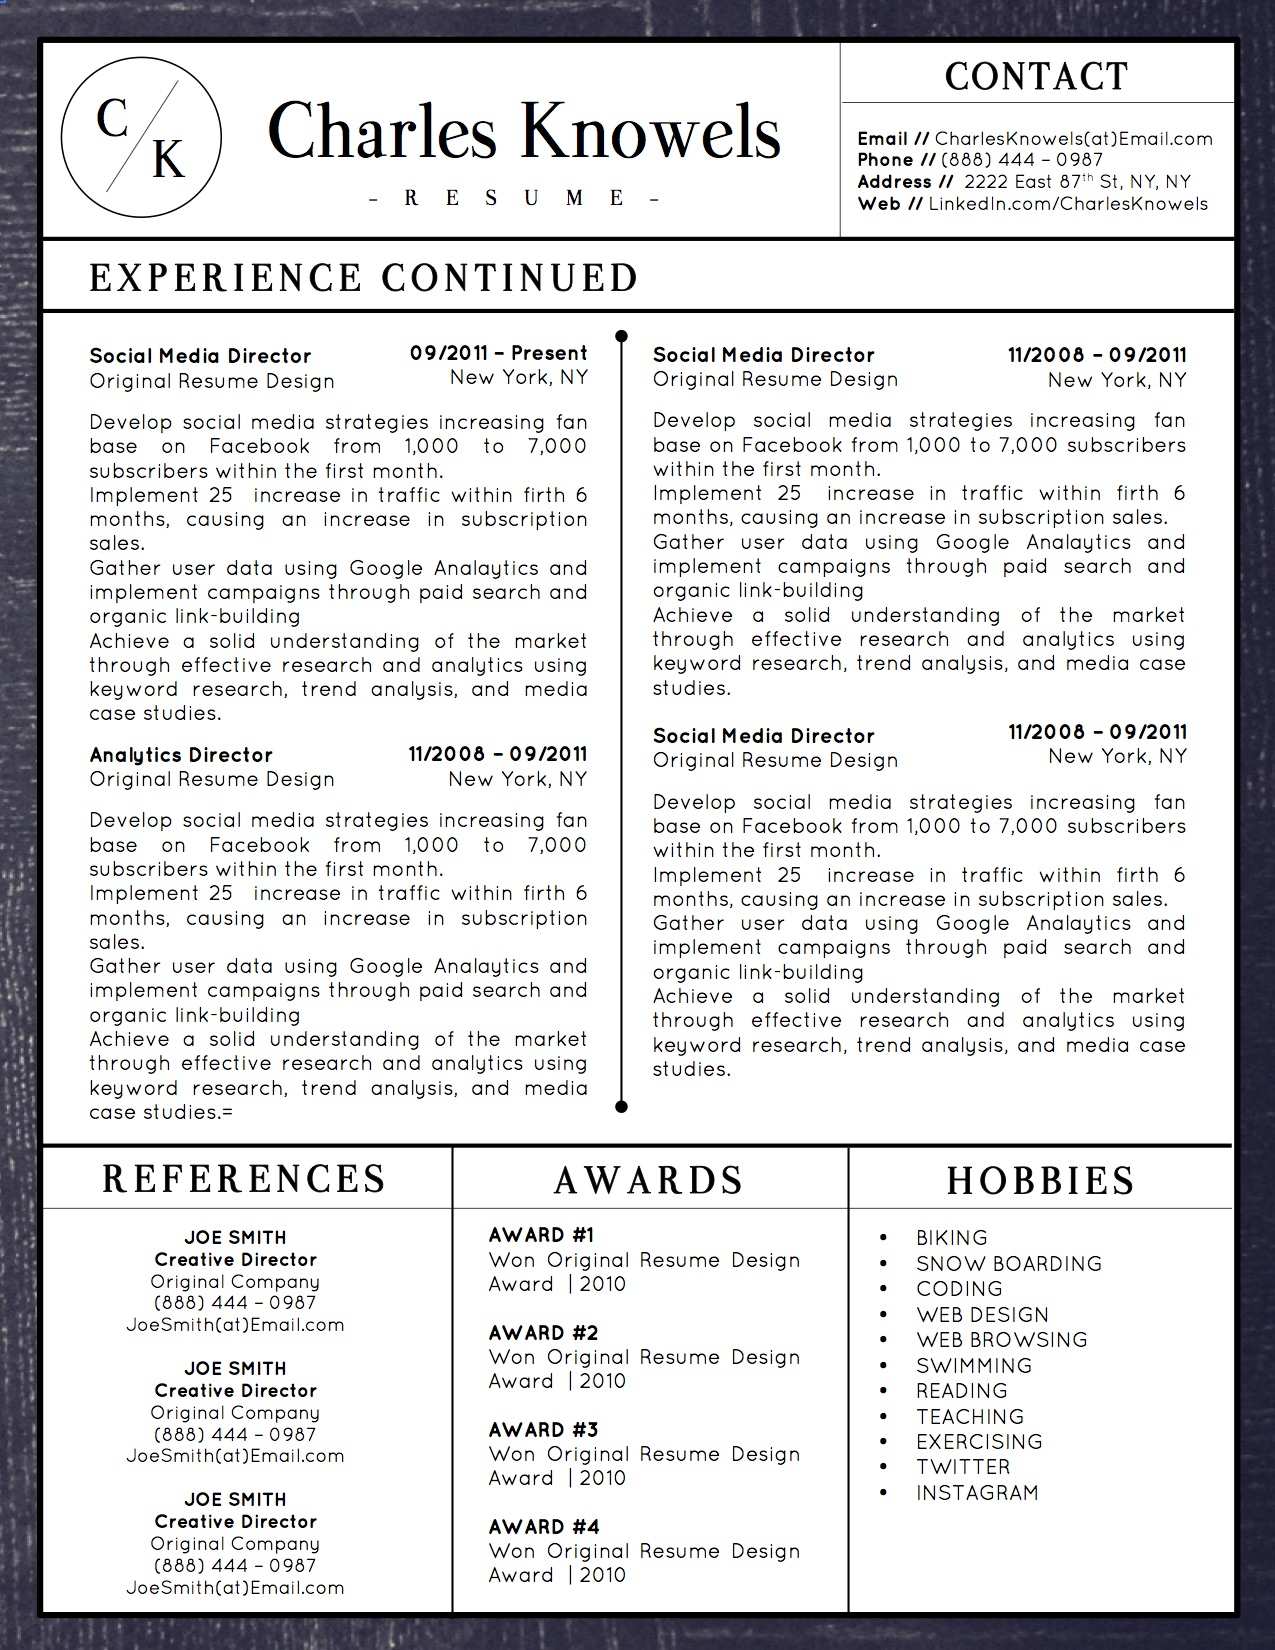 Charles Knowels Downloadable Resume + Cover Template and Cover Letter Template for Microsoft Word and Apple Pages. This cover letter template is perfect for anyone in the fashion field. The template's design is a modern, unique, colorful, and professional. WE SWEAT THE DETAILS, SO YOU DON'T HAVE TO Stand Out Shop resume templates for Microsoft Word and Apple Pages will help you design a modern and professional resume in minutes! Simply download, open in Microsoft Word or Apple Pages, and input your resume's information. Increase your chances of landing your dream job with a job winning, modern, simple, and scannable resume template for Microsoft Word and Apple Pages. Creating a resume shouldn't suck Simply download a resume template from Stand Out Shop, enter your information in Microsoft Word or Apple Pages and get a beautifully formatted resume in seconds. Create a unique and vivid resume in minutes. Make an impressive resume. Customize your own layout in Microsoft Word or Apple Pages and introduce yourself in an impressive way. You can download your resume at any time. Stand out from other job seekers with a beautiful professional design.